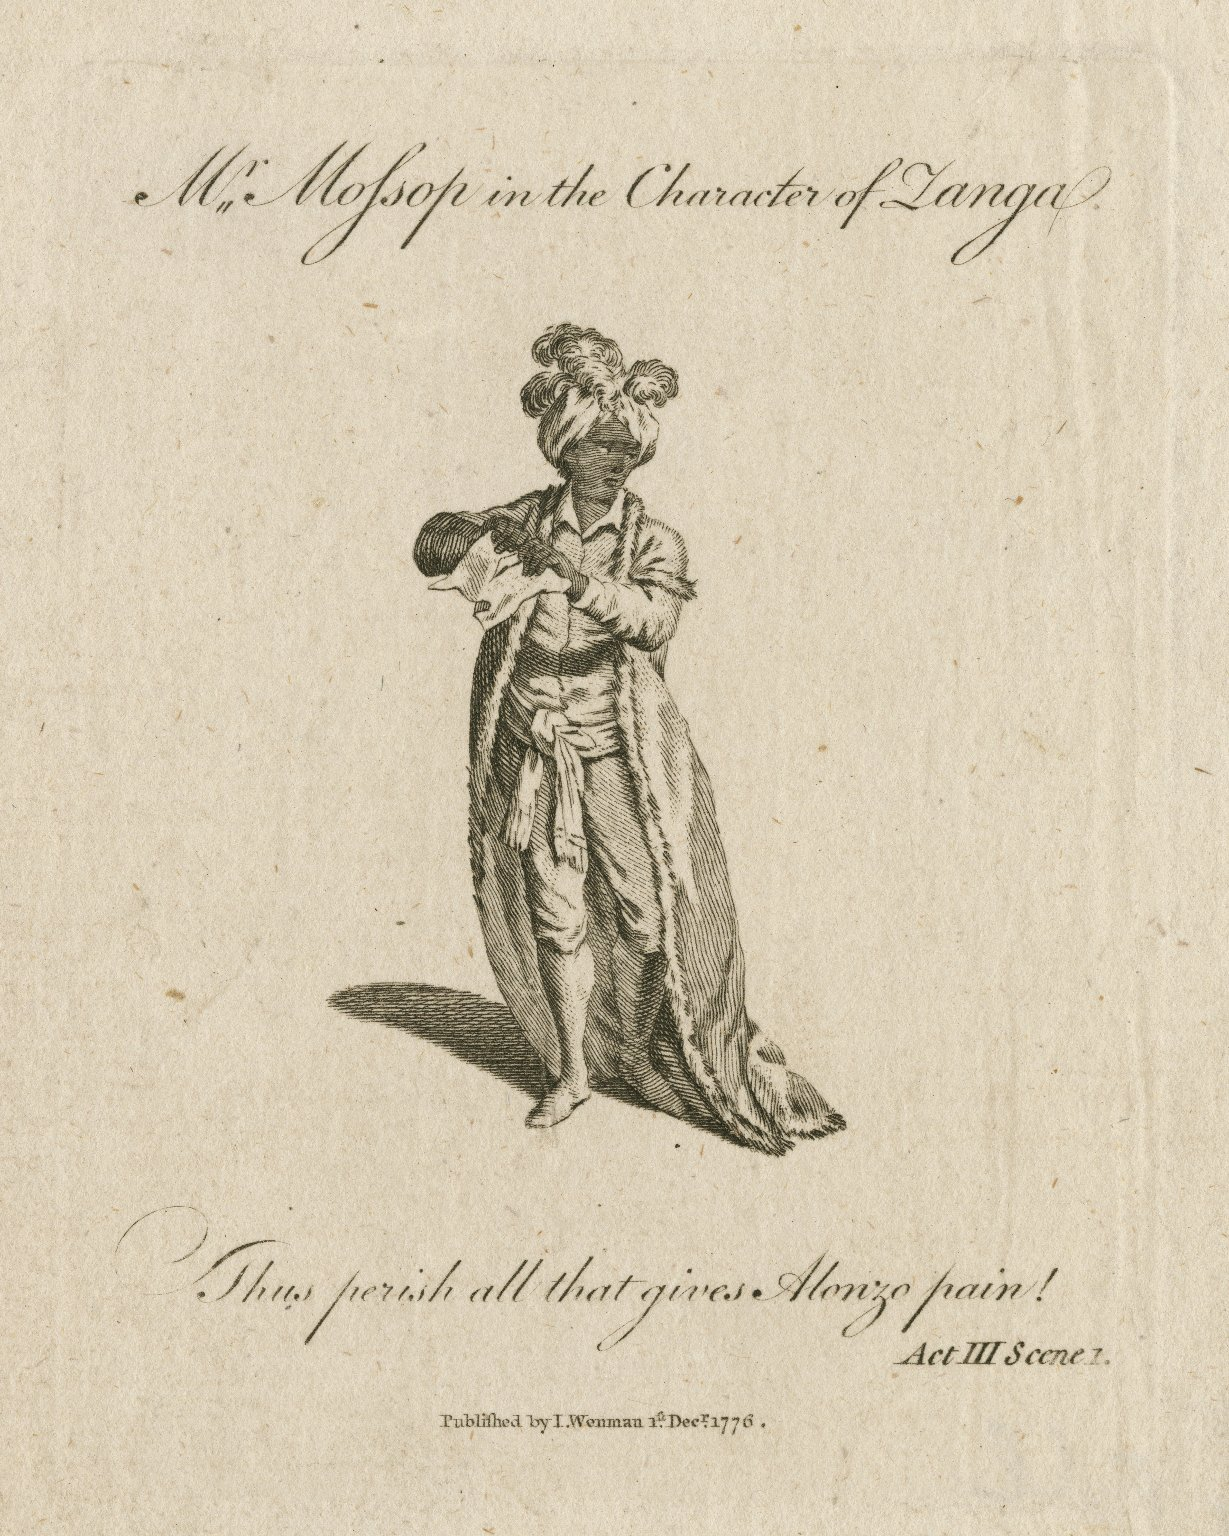 <b>Zanga, 1776</b>     	</br>Irish actor Henry Mossop as Zanga in The Revenge, 1776</br><br/><b>Source: </b><i>Mr. Mossop in the character of Zanga (Call number: ART File M914.4 no.2), 1776, Folger Digital Image Collection, University of Cincinnati Libraries Digital Collections, University of Cincinnati, http://digproj.libraries.uc.edu:8180/luna/servlet/s/7gcc43</i>